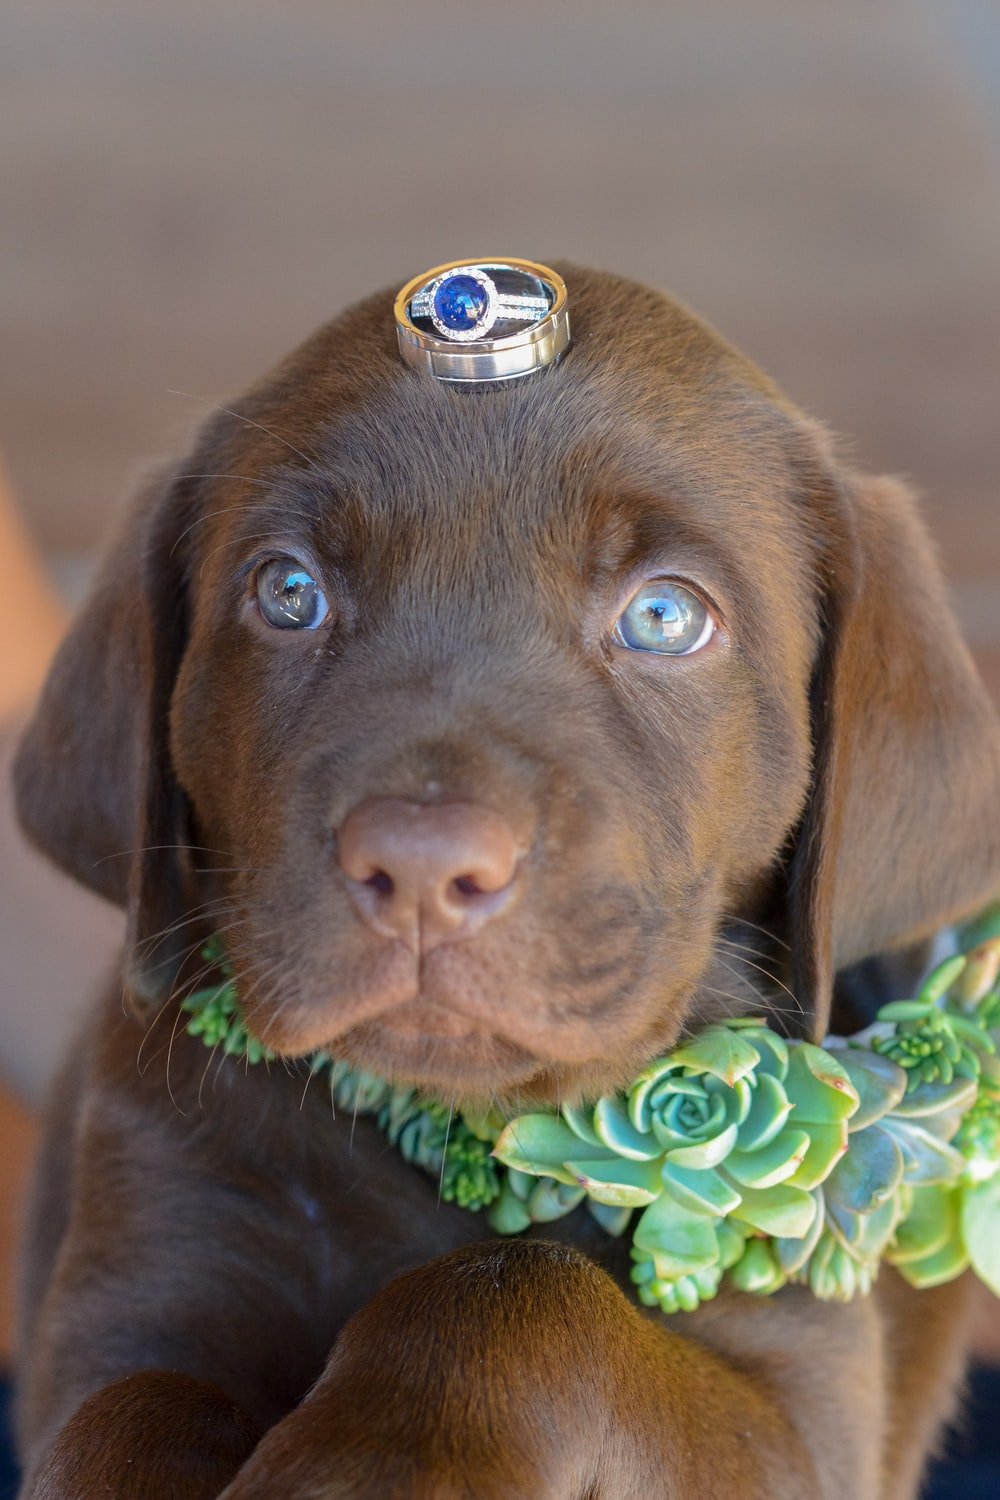 chocolate labrador retriever puppy with green and white flower on mouth